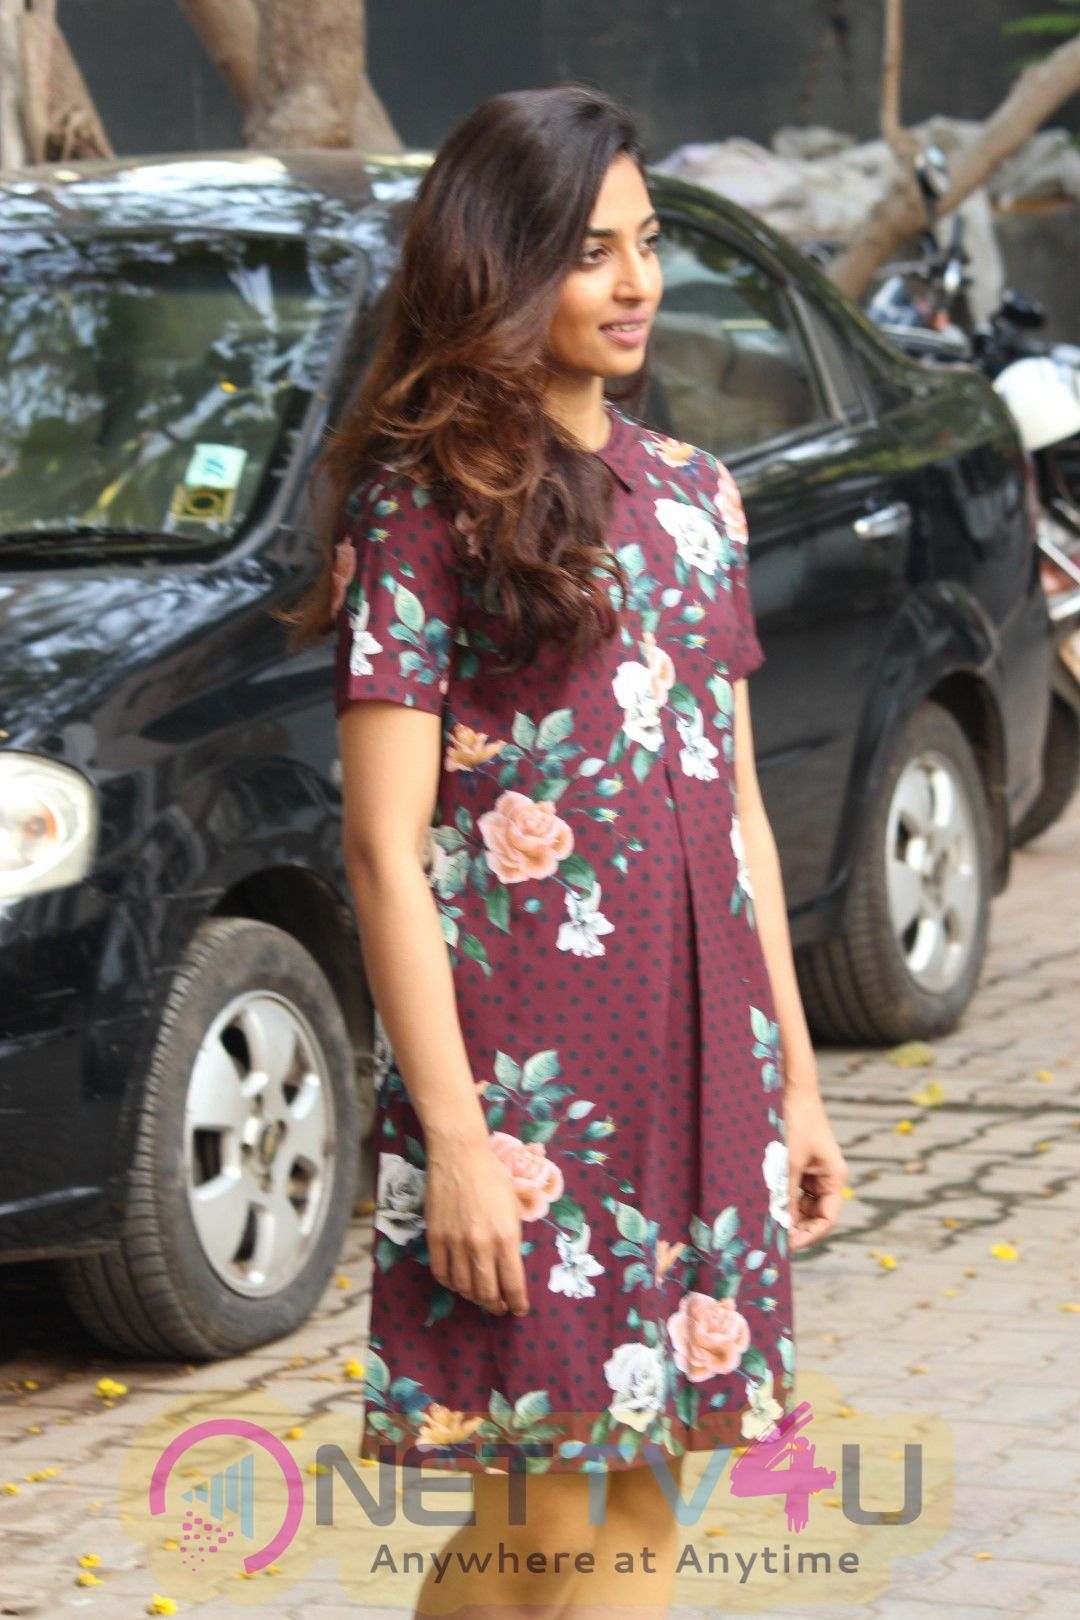 Photos Of Radhika Apte Spotted Promoting Film Phobia